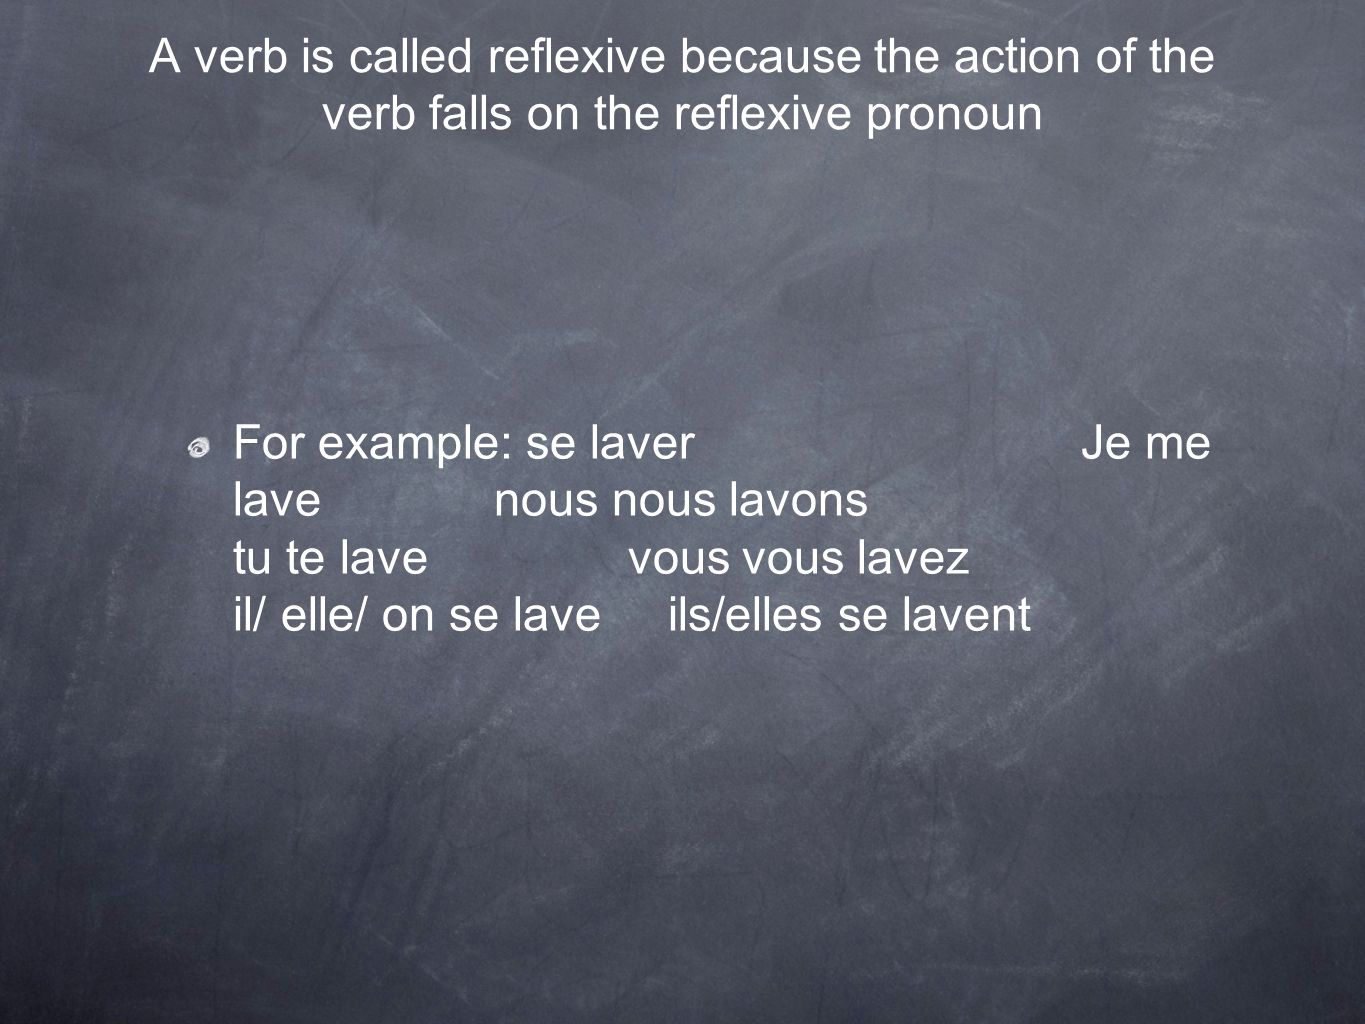 A verb is called reflexive because the action of the verb falls on the reflexive pronoun